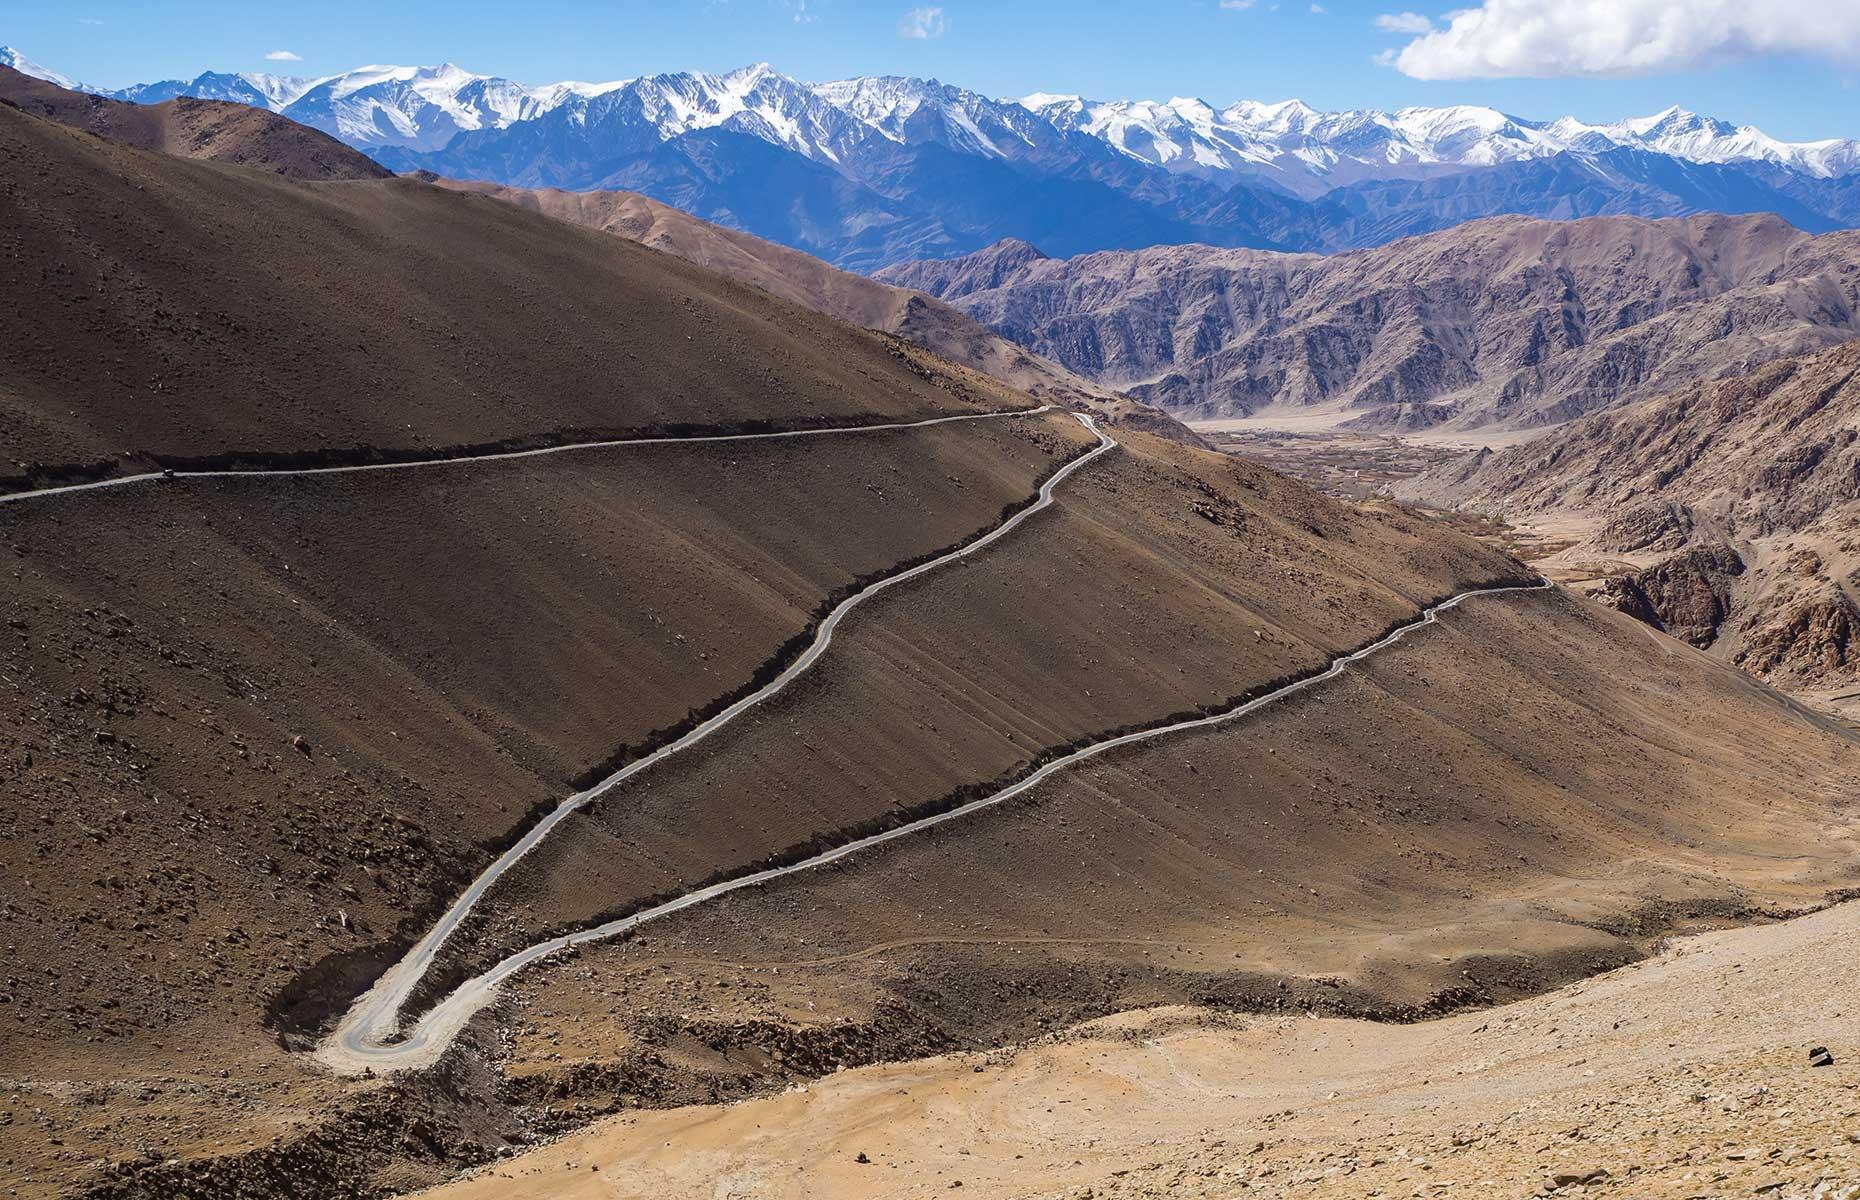 Slide 8 of 31: Khardung La Pass in Ladakh, India, is the highest motorable road in the world. At an altitude of 18,379 feet (5,602m), this dizzyingly high road carves its way up the mountains and into the Nubra and Shyok Valleys, encompassing plenty of breathtaking panoramic views and more than a few twists and turns along the way.